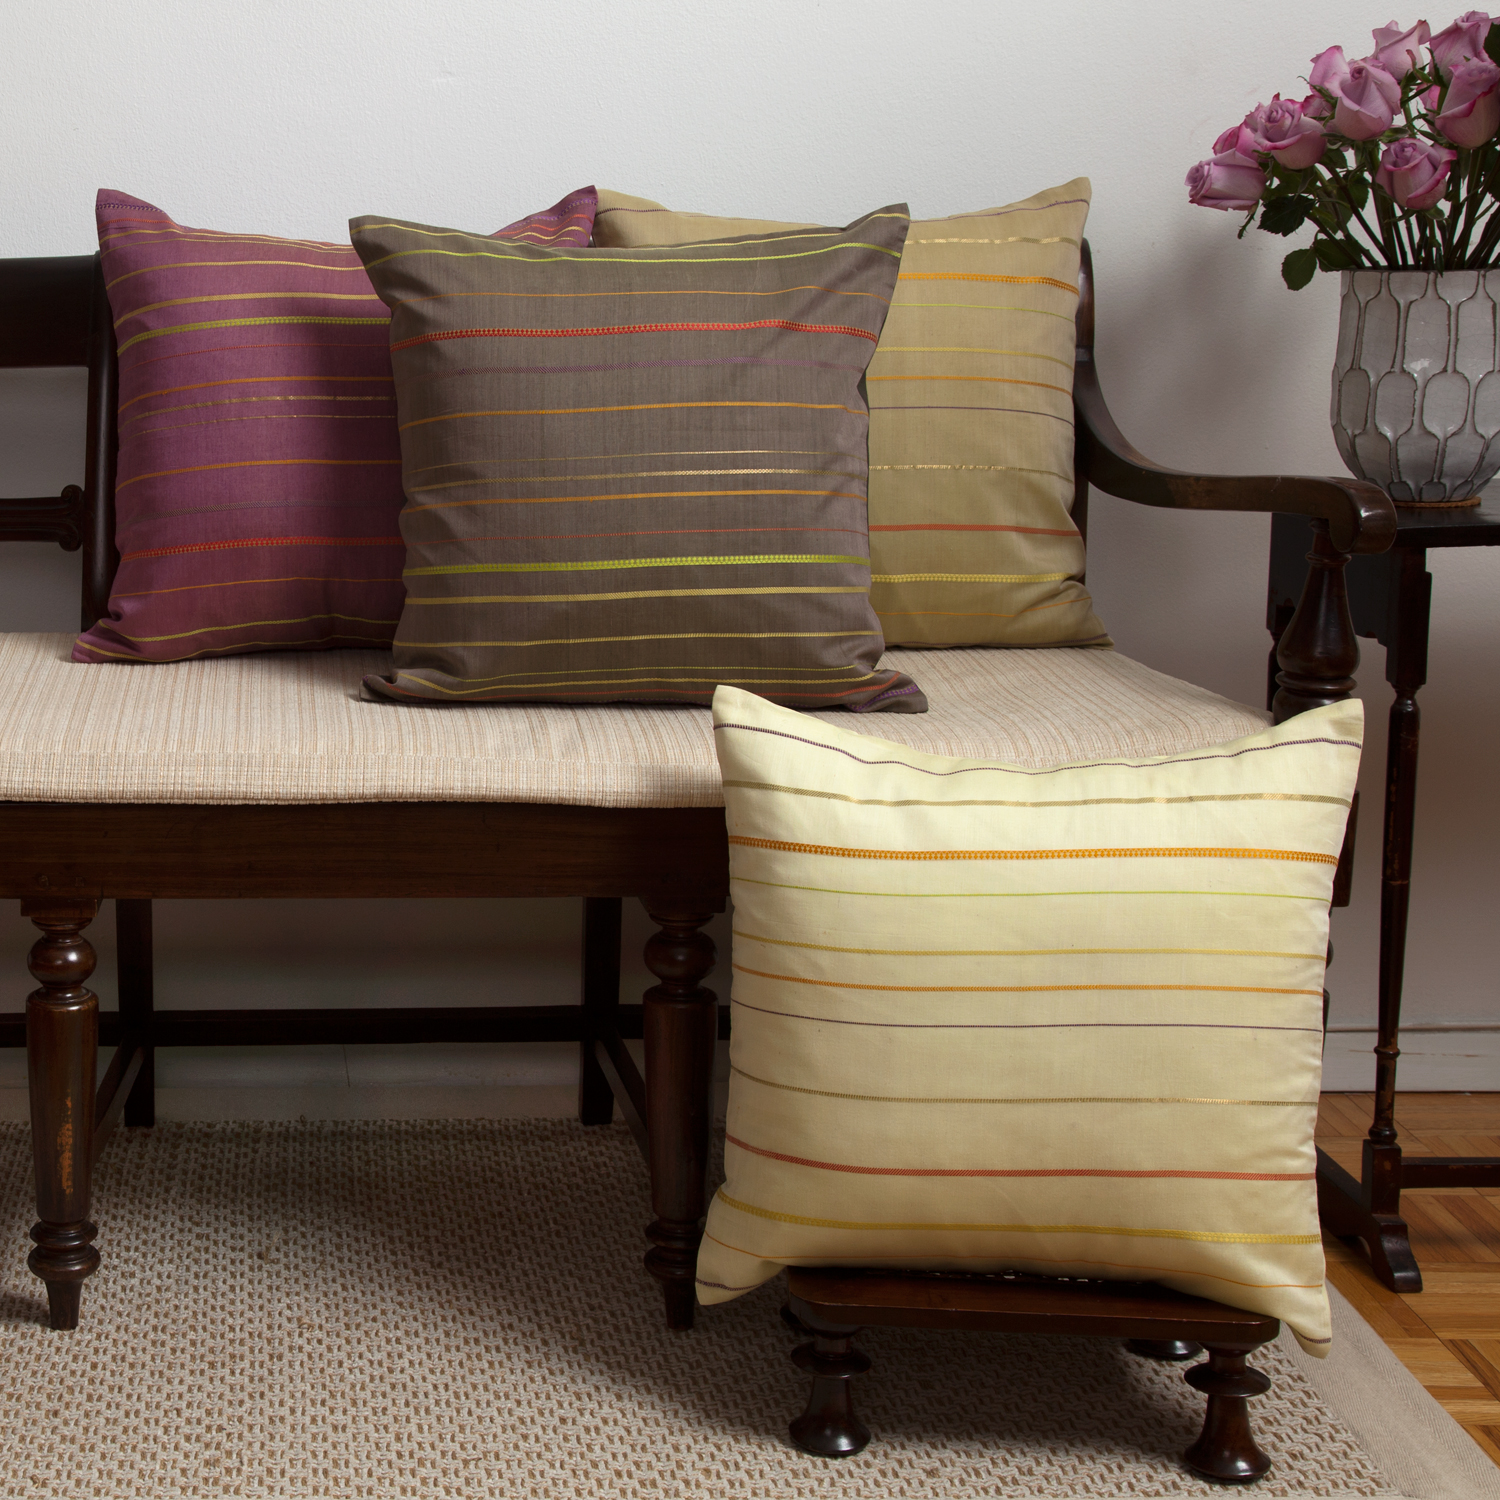 MarigoldStyle rainbow weave pillow covers